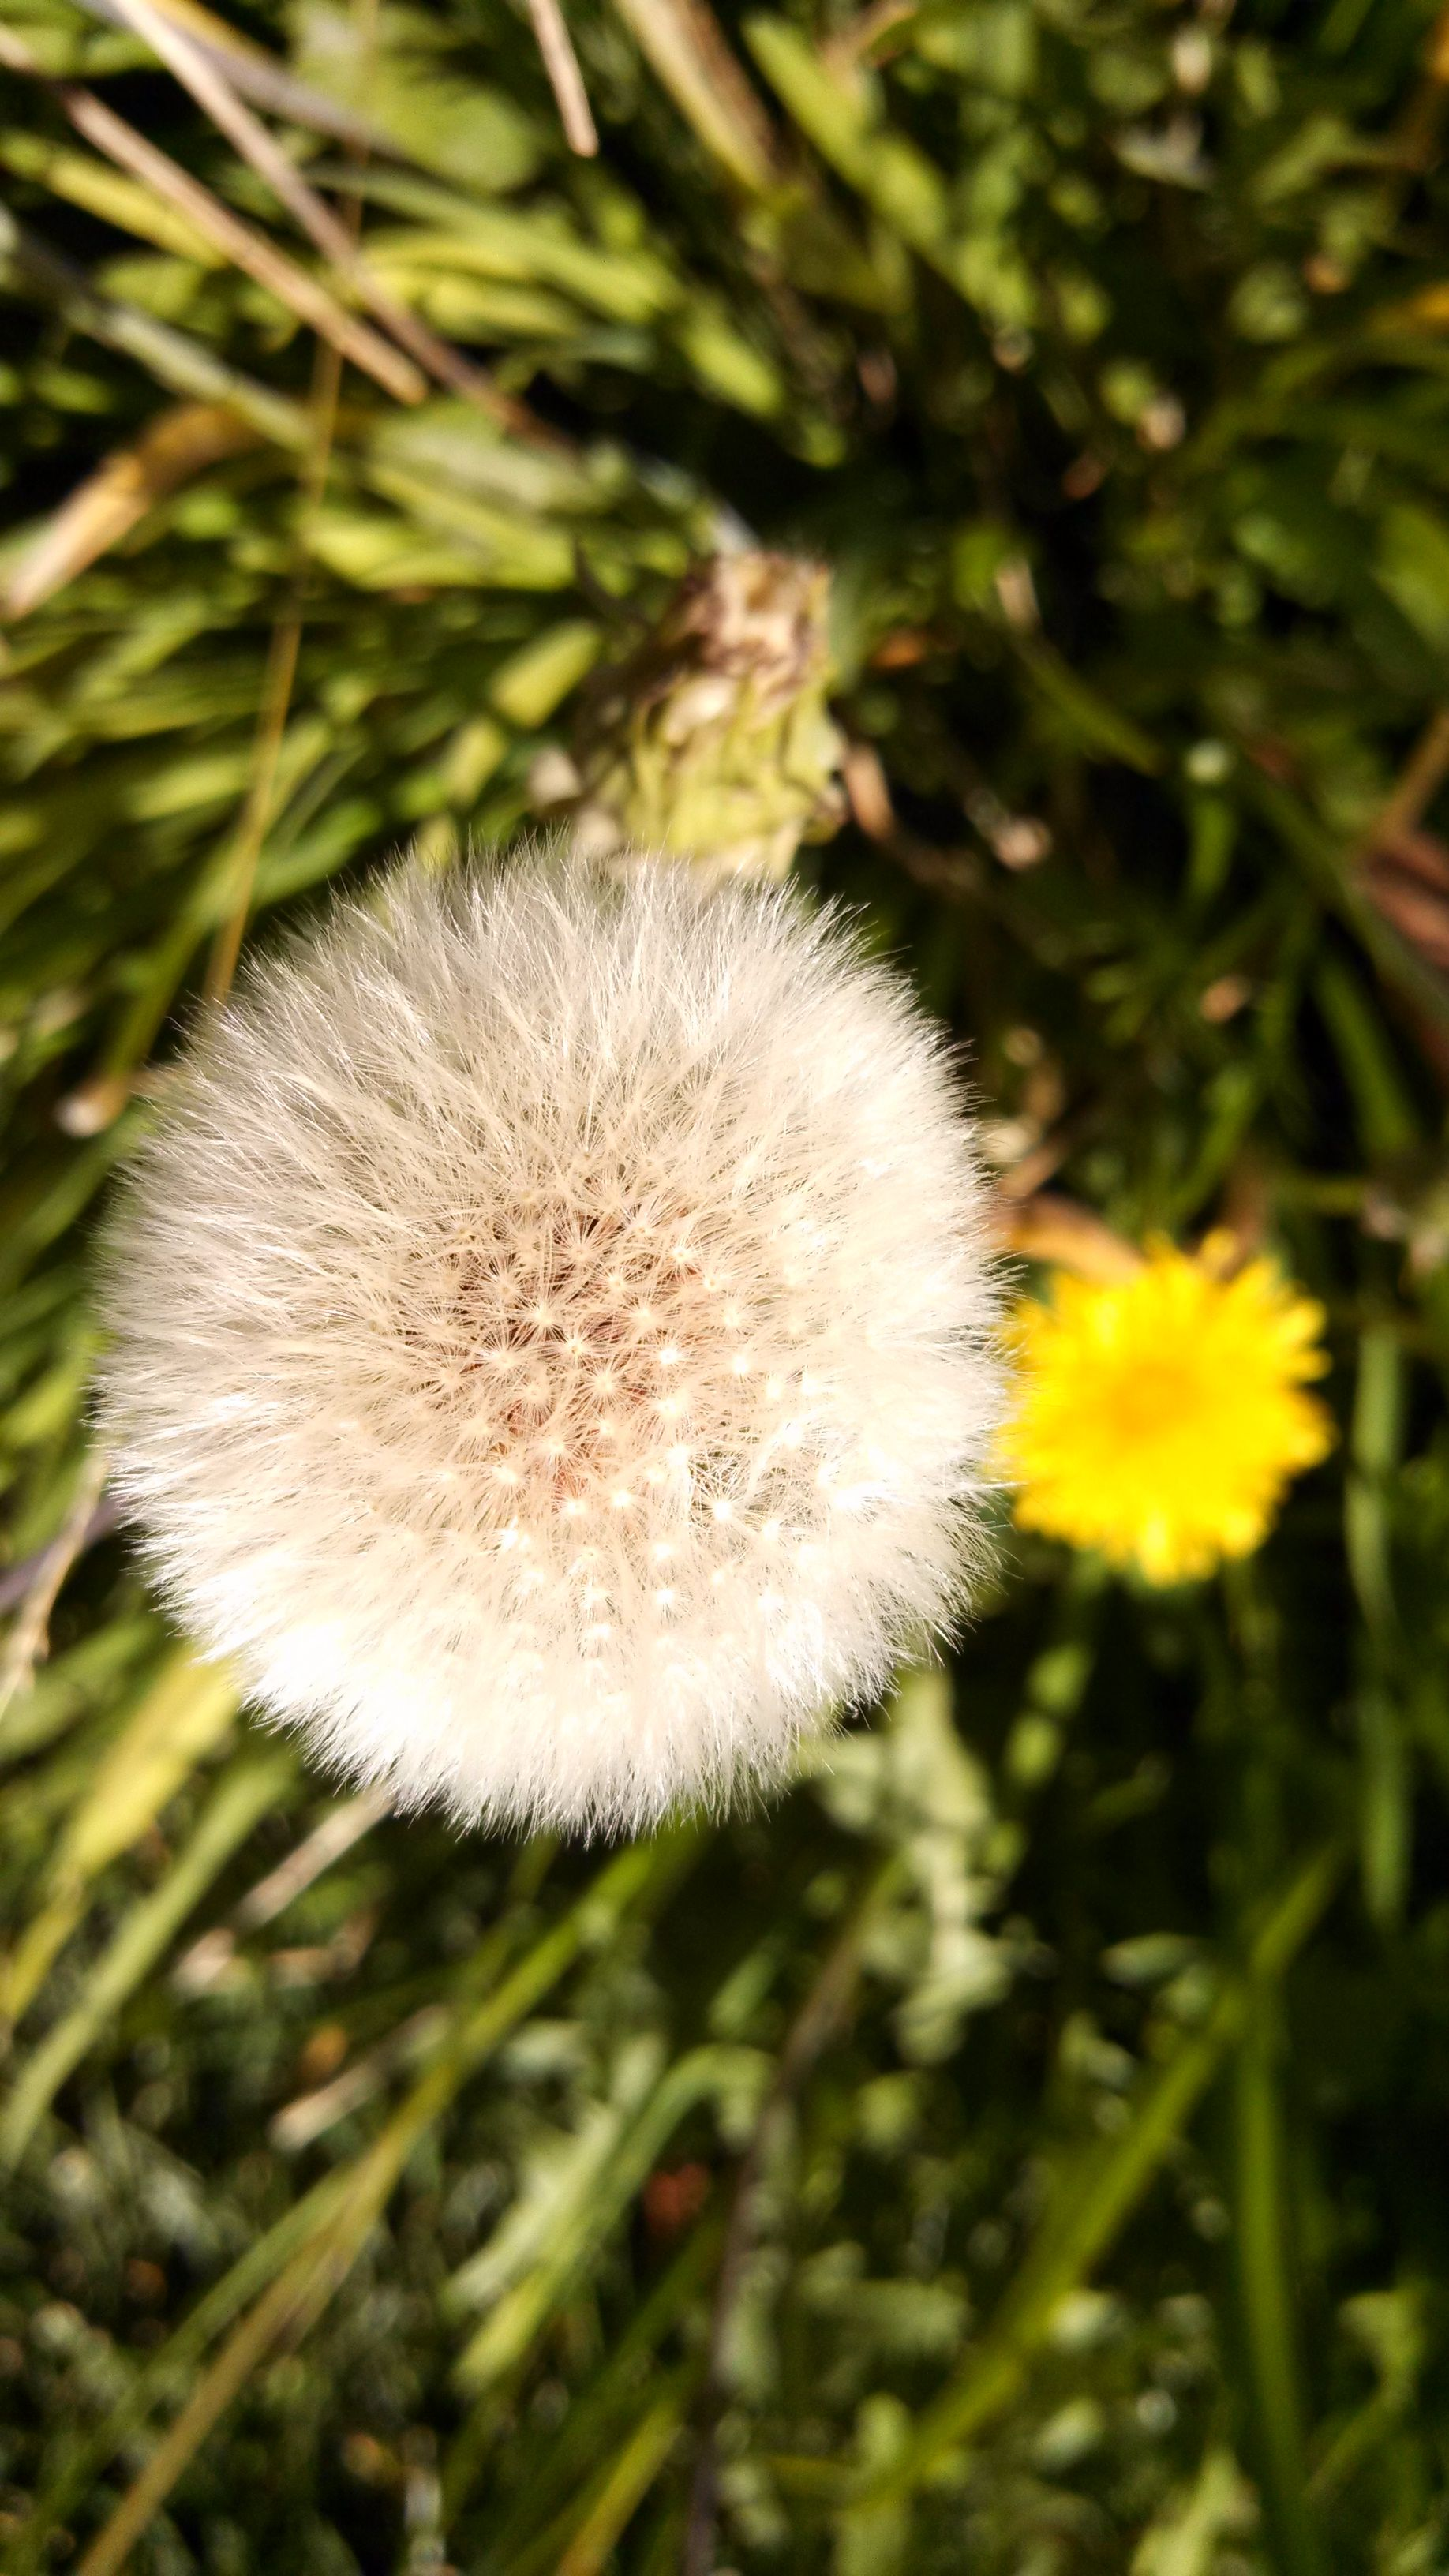 Pin By Tangerine Buttercup On The Elusive Windmill Dandelion Macro Photography Nature Photography